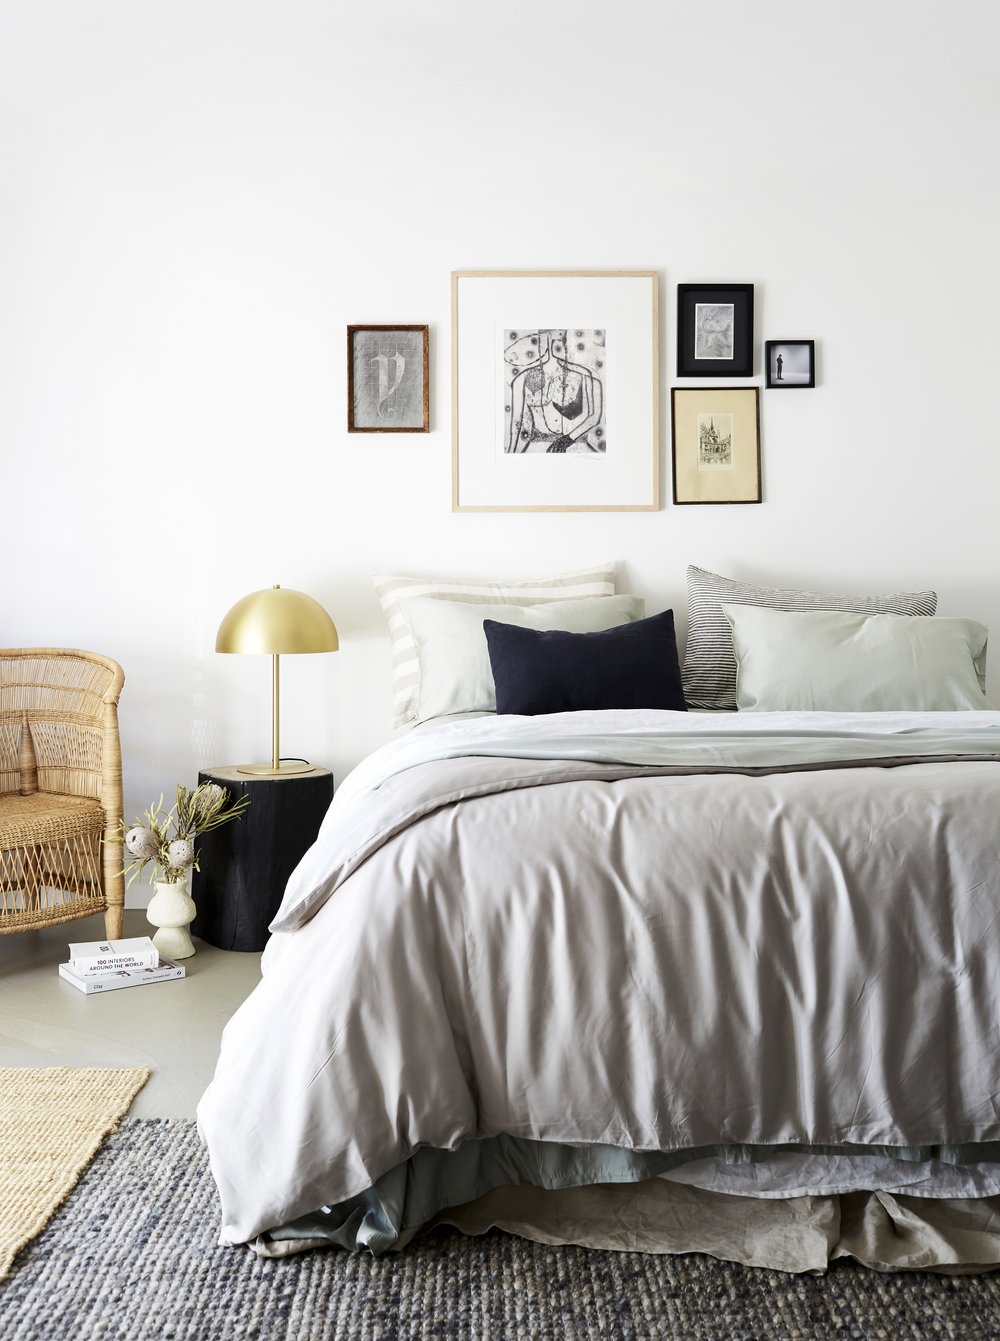 I Love Linen  Pure Organic Bamboo quilt cover and pillow cases in Pistachio. Charcoal Noir Le Petit cushion. French Linen sheet set in White. French Linen Charcoal Inky Stripes & Natural and Milk stripes pillow cases. Styling - Kristin Rawson. Photo - Jessie Prince.